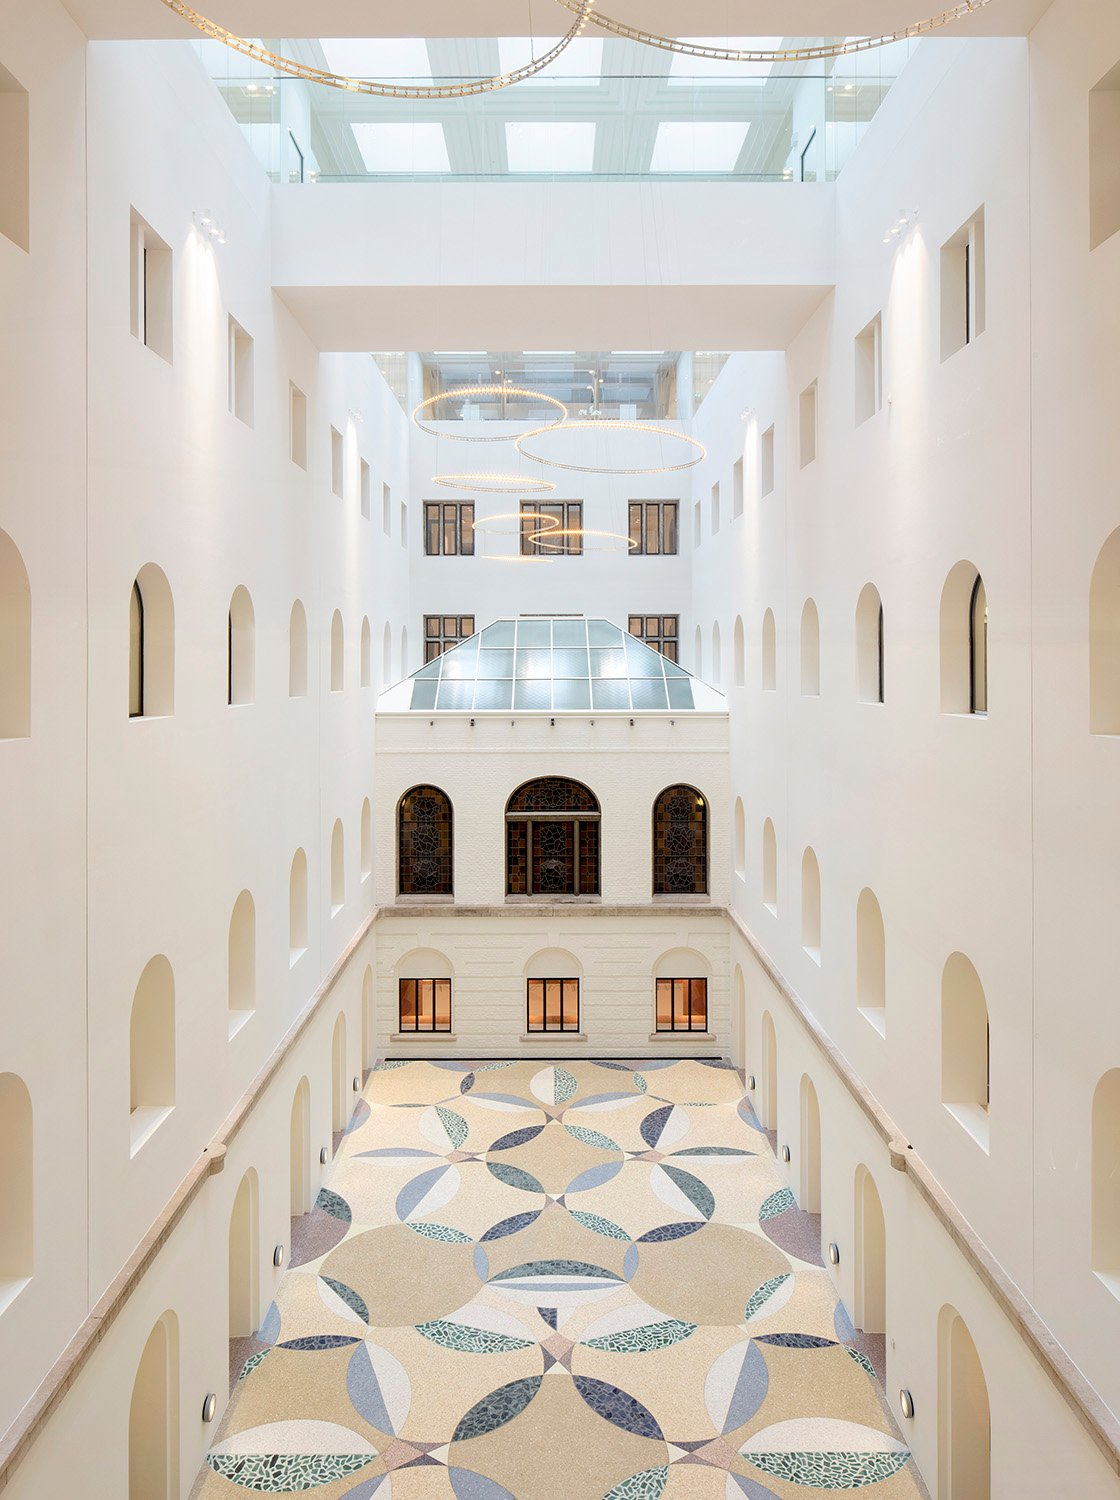 Central atrium with mosaic by Rob Birza Karin Borghouts